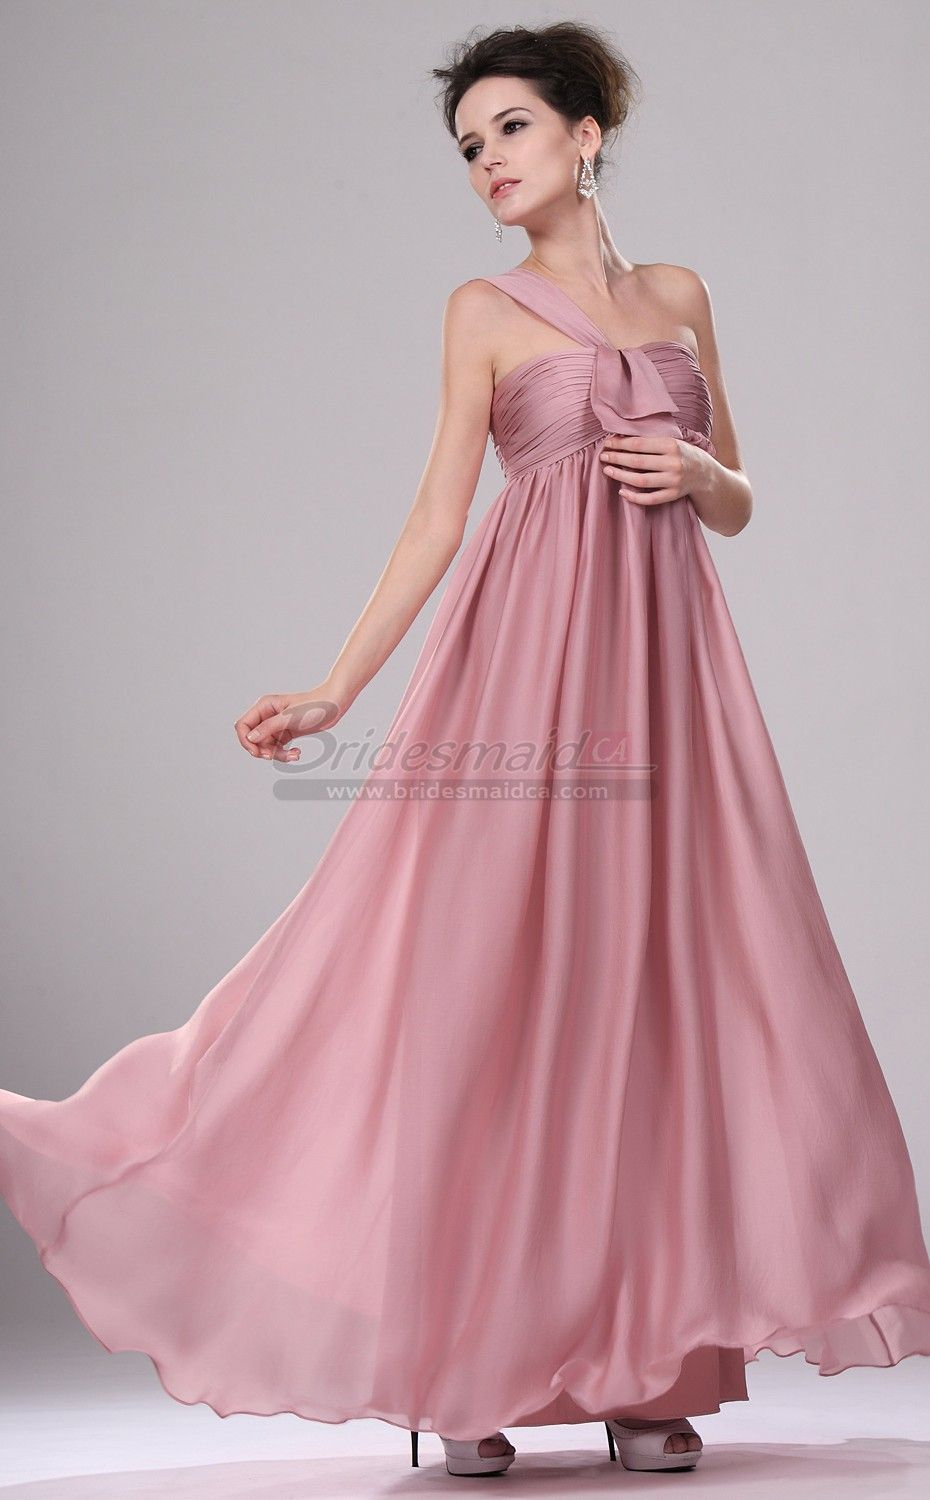 Bridesmaiddresses long one shoulder satin chiffon nude pink bridesmaiddresses long one shoulder satin chiffon nude pink vintage bridesmaid dress bd ca437 ombrellifo Gallery